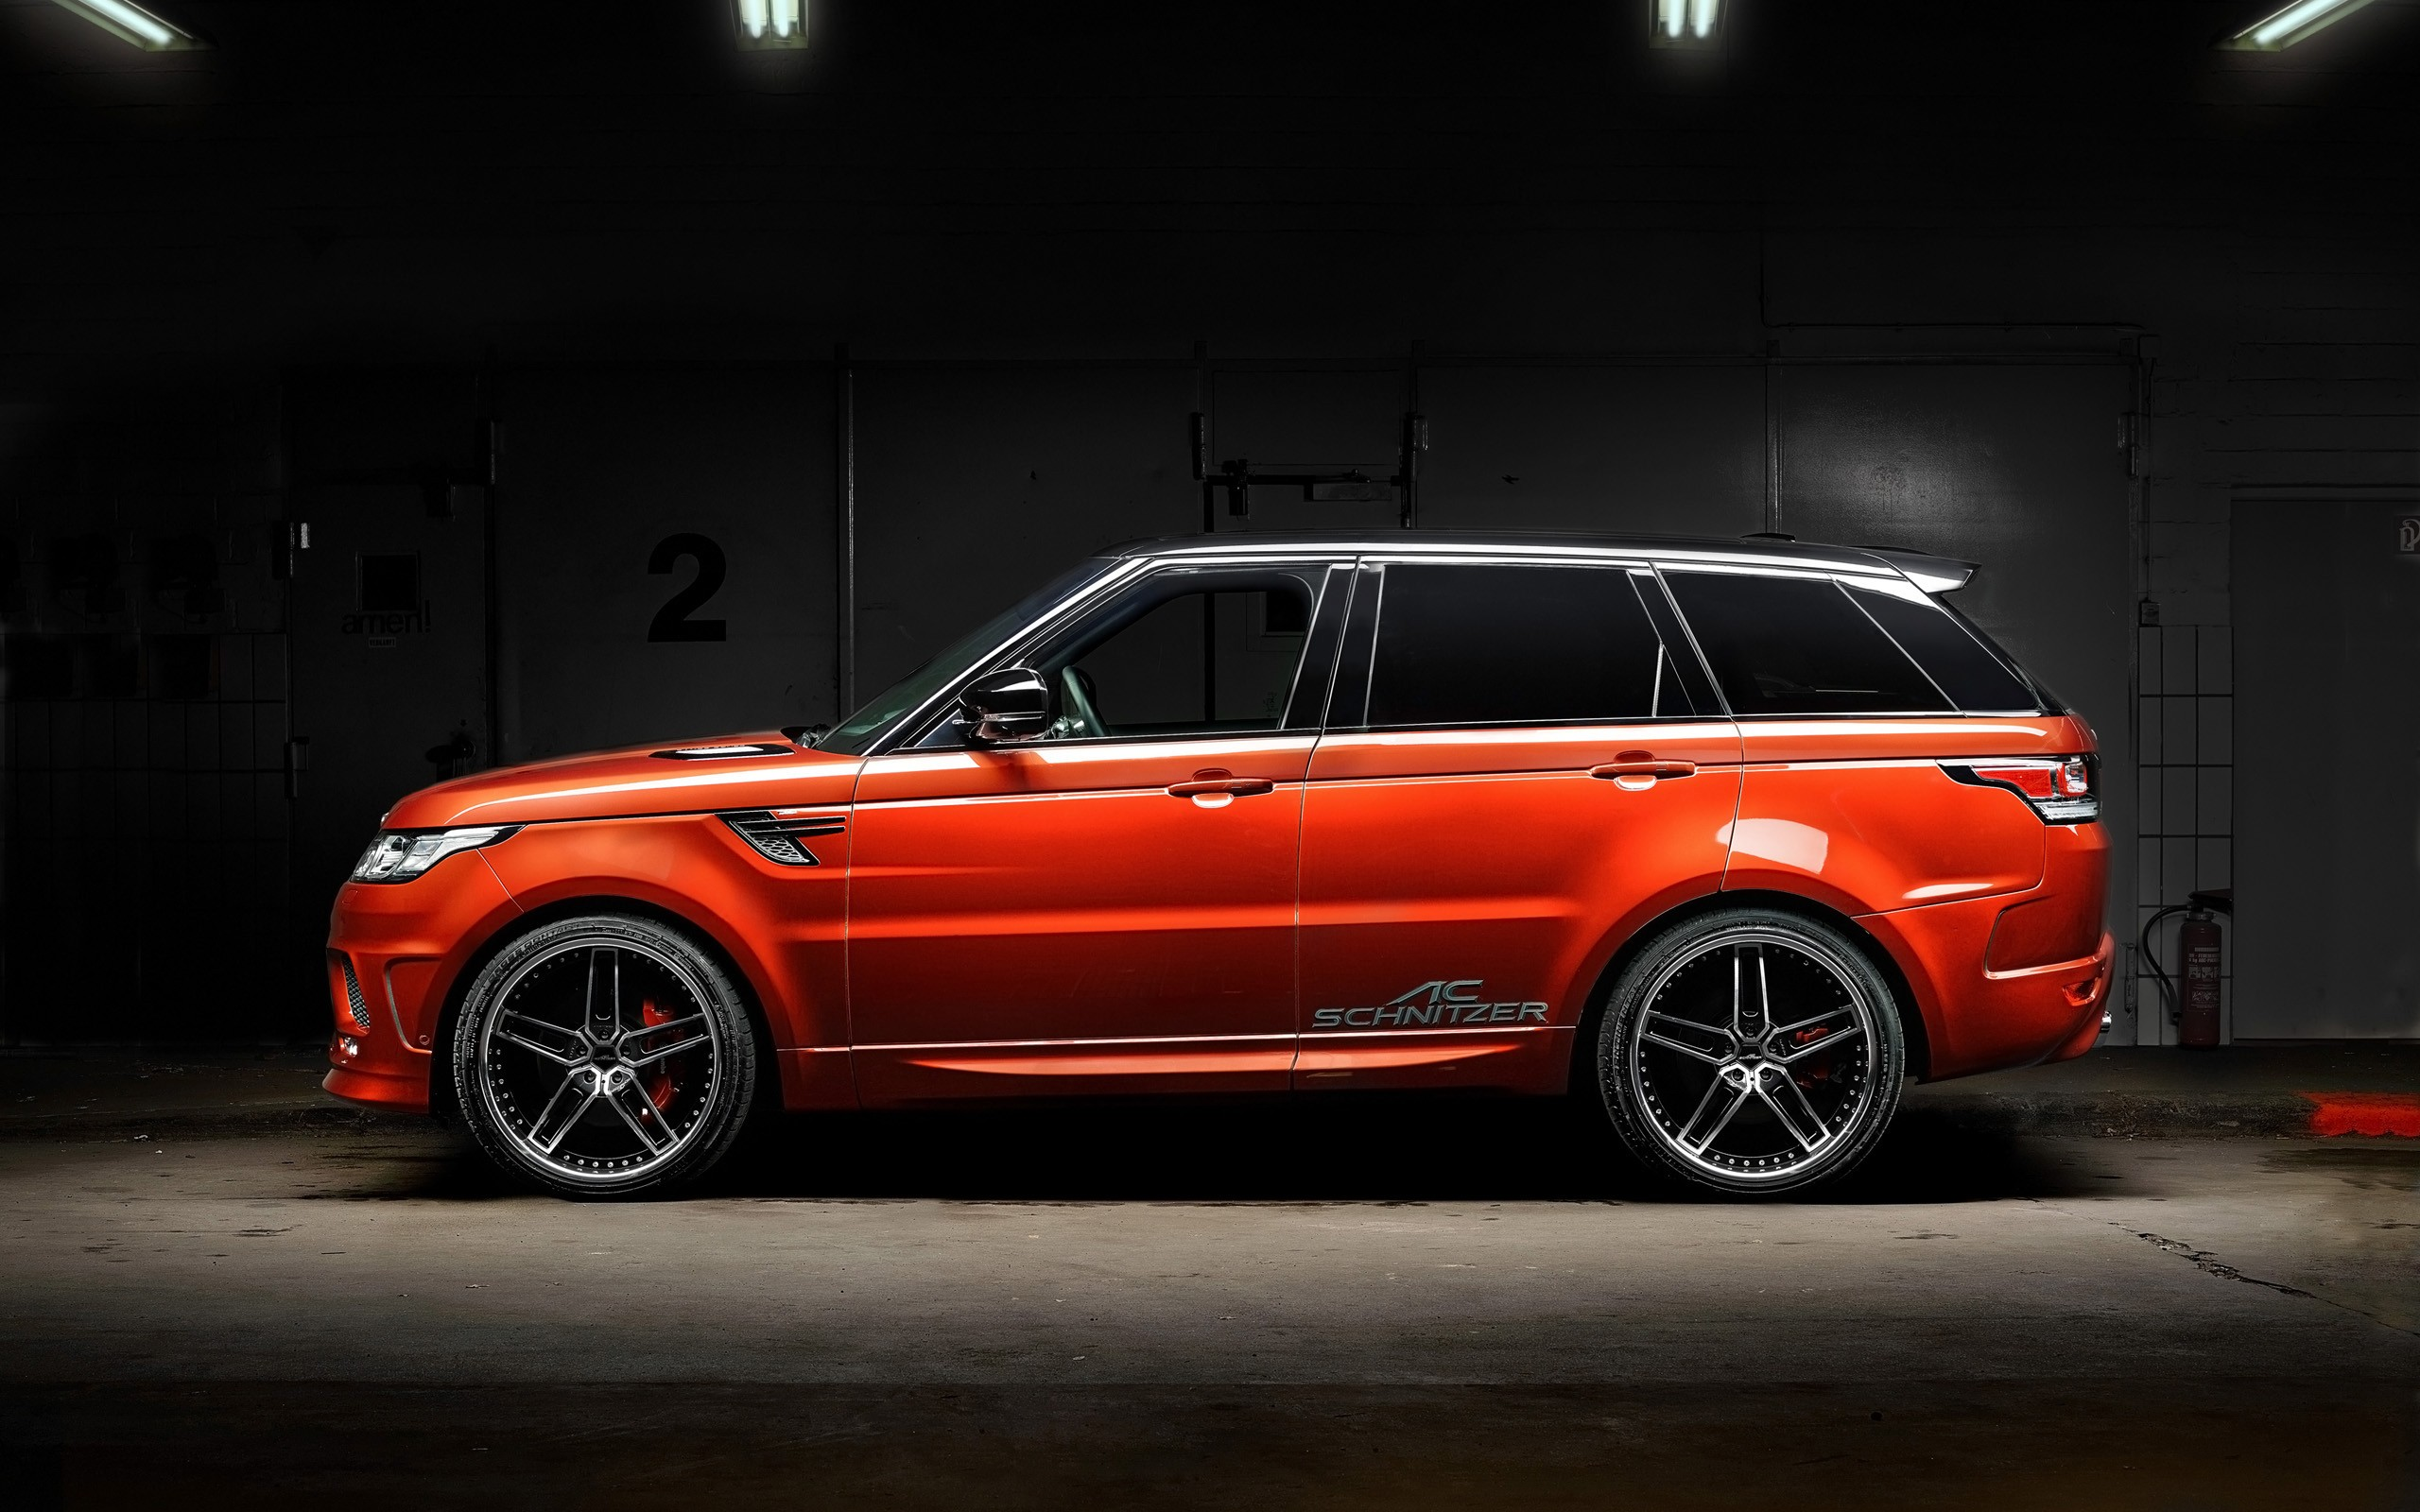 2014 Range Rover Sport By Ac Schnitzer Wallpaper Hd Car